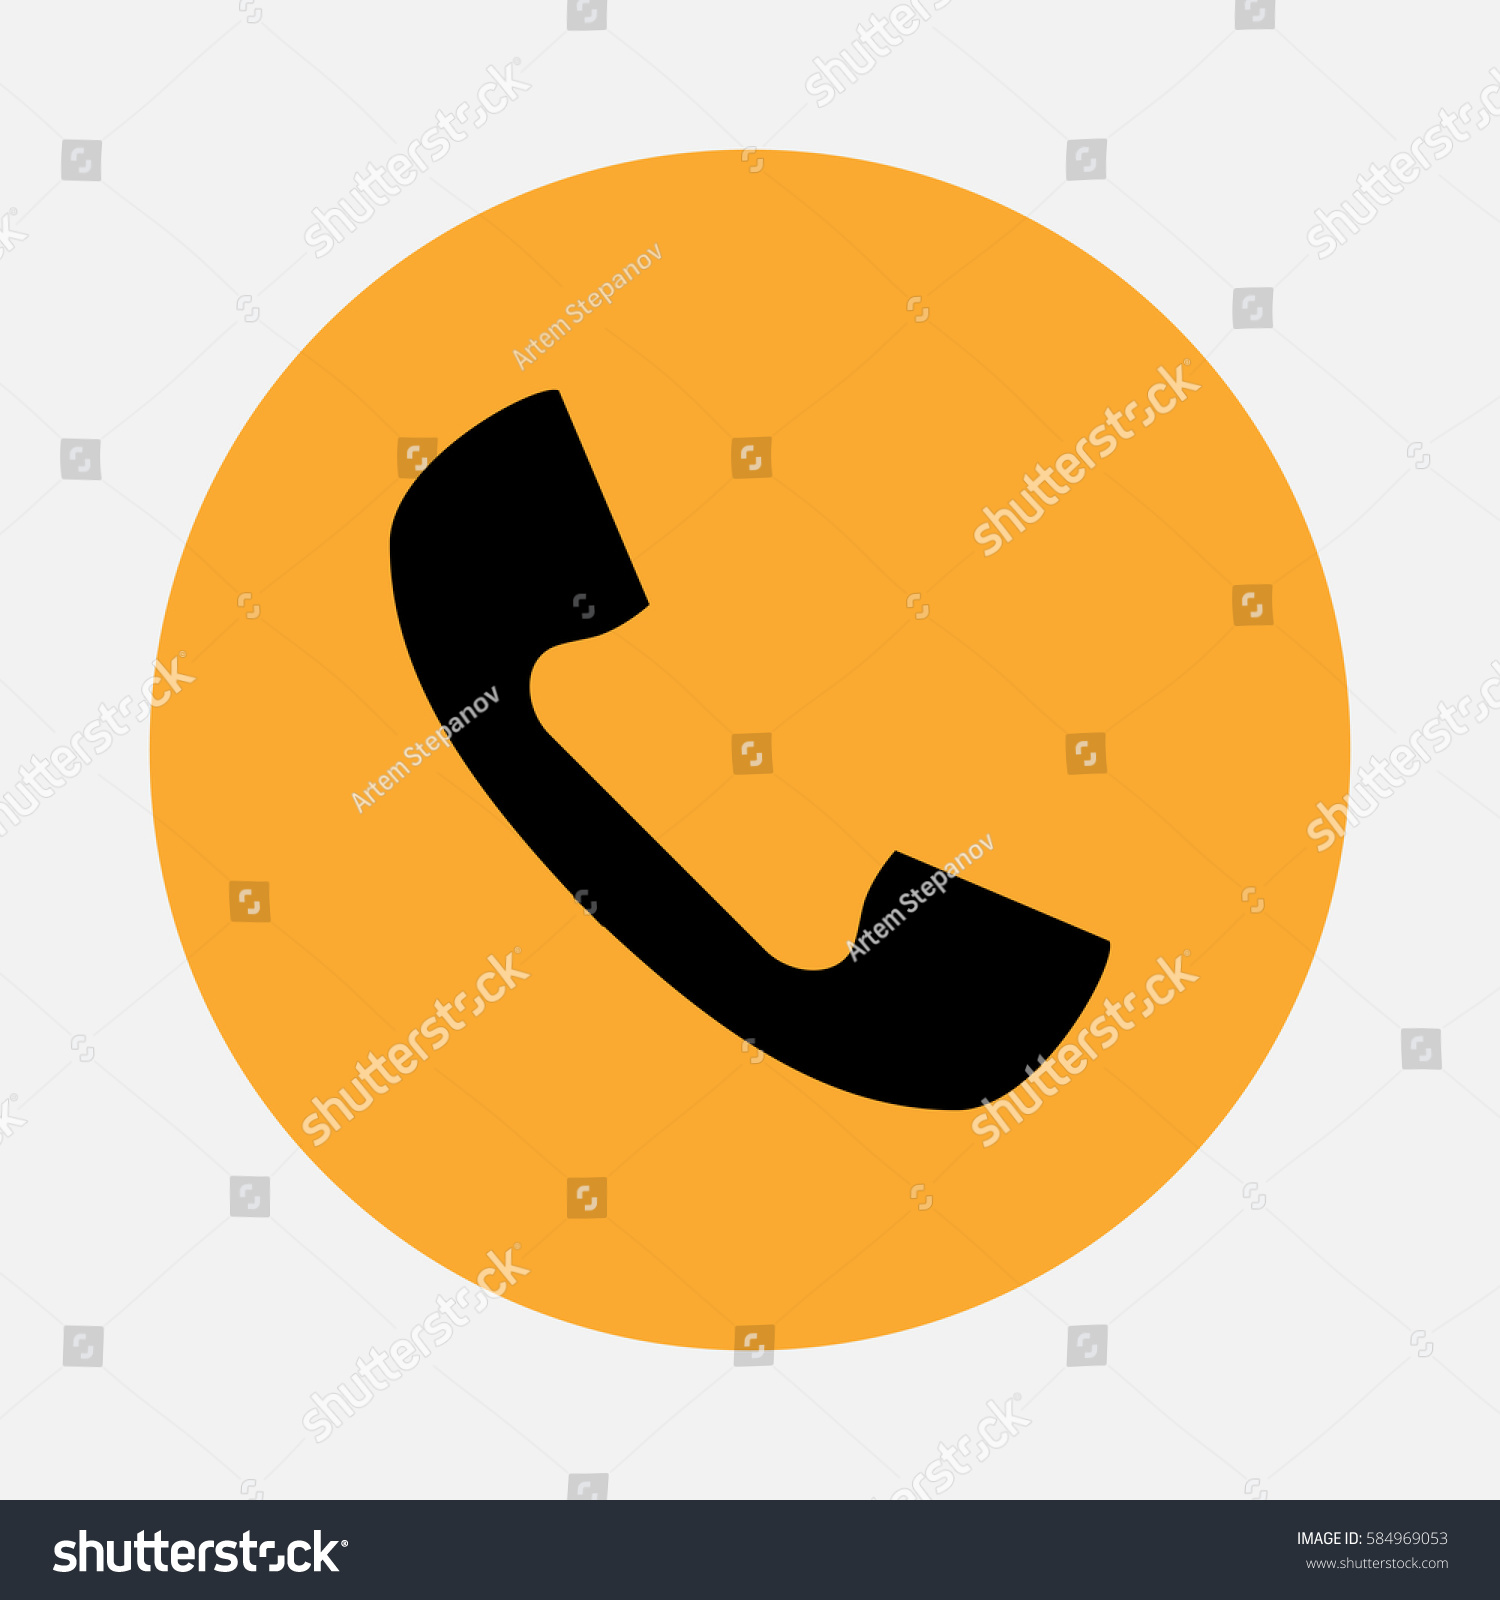 Human communication is symbolic why image collections symbol and telephone vector icon isolated communication symbol stock vector telephone vector icon isolated communication symbol or logo buycottarizona